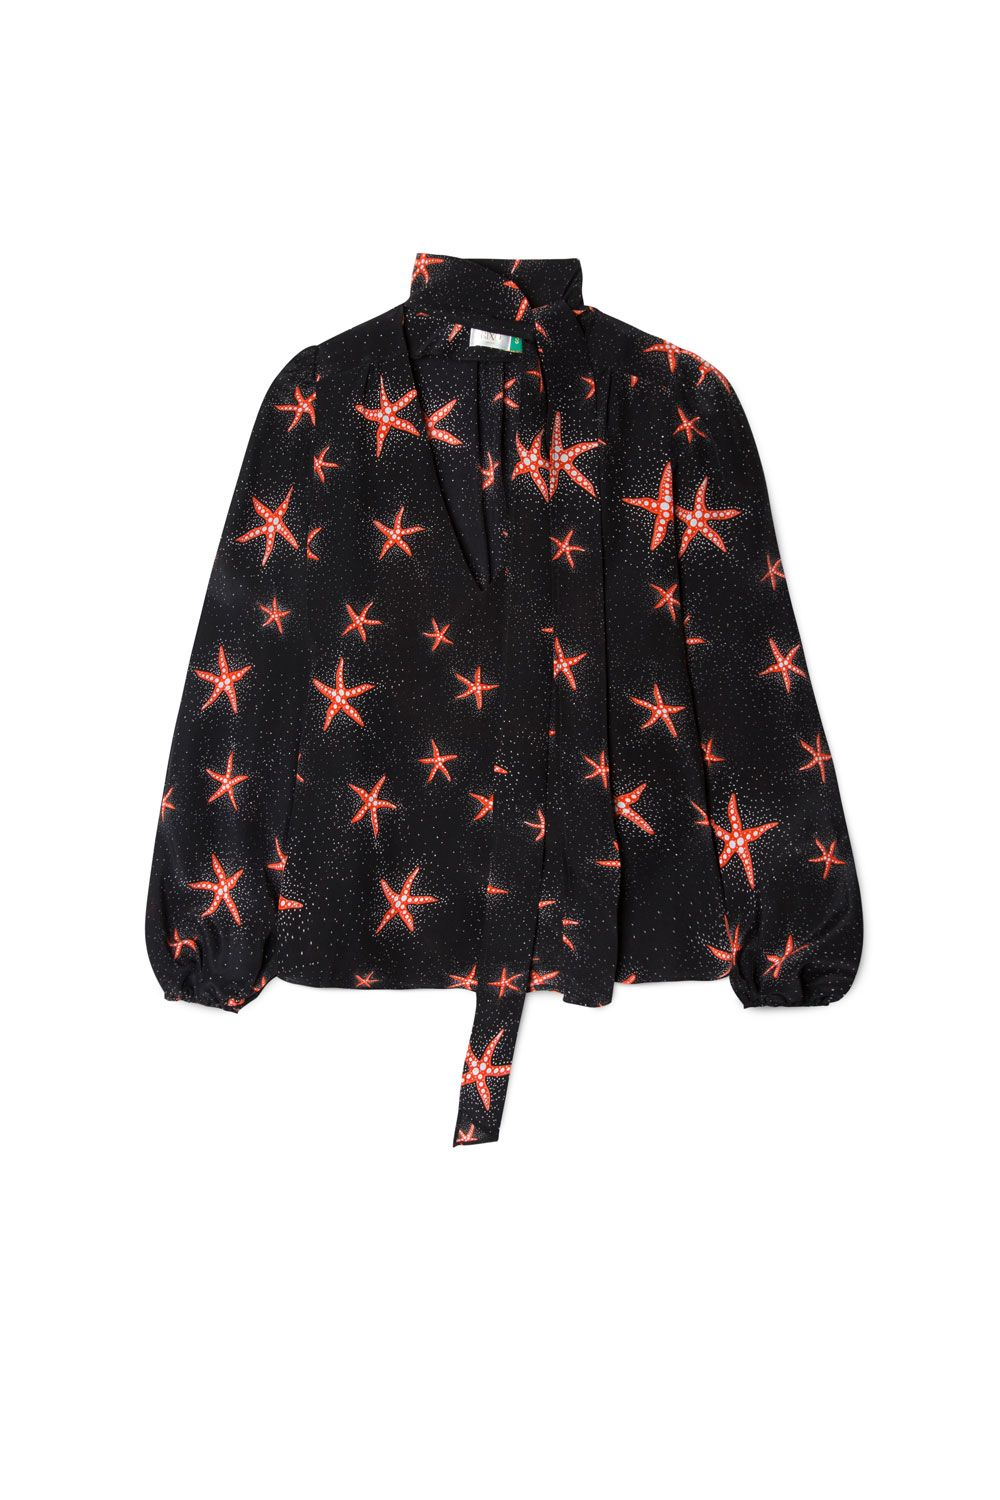 RIXO London Moss – Starfish Black Coral